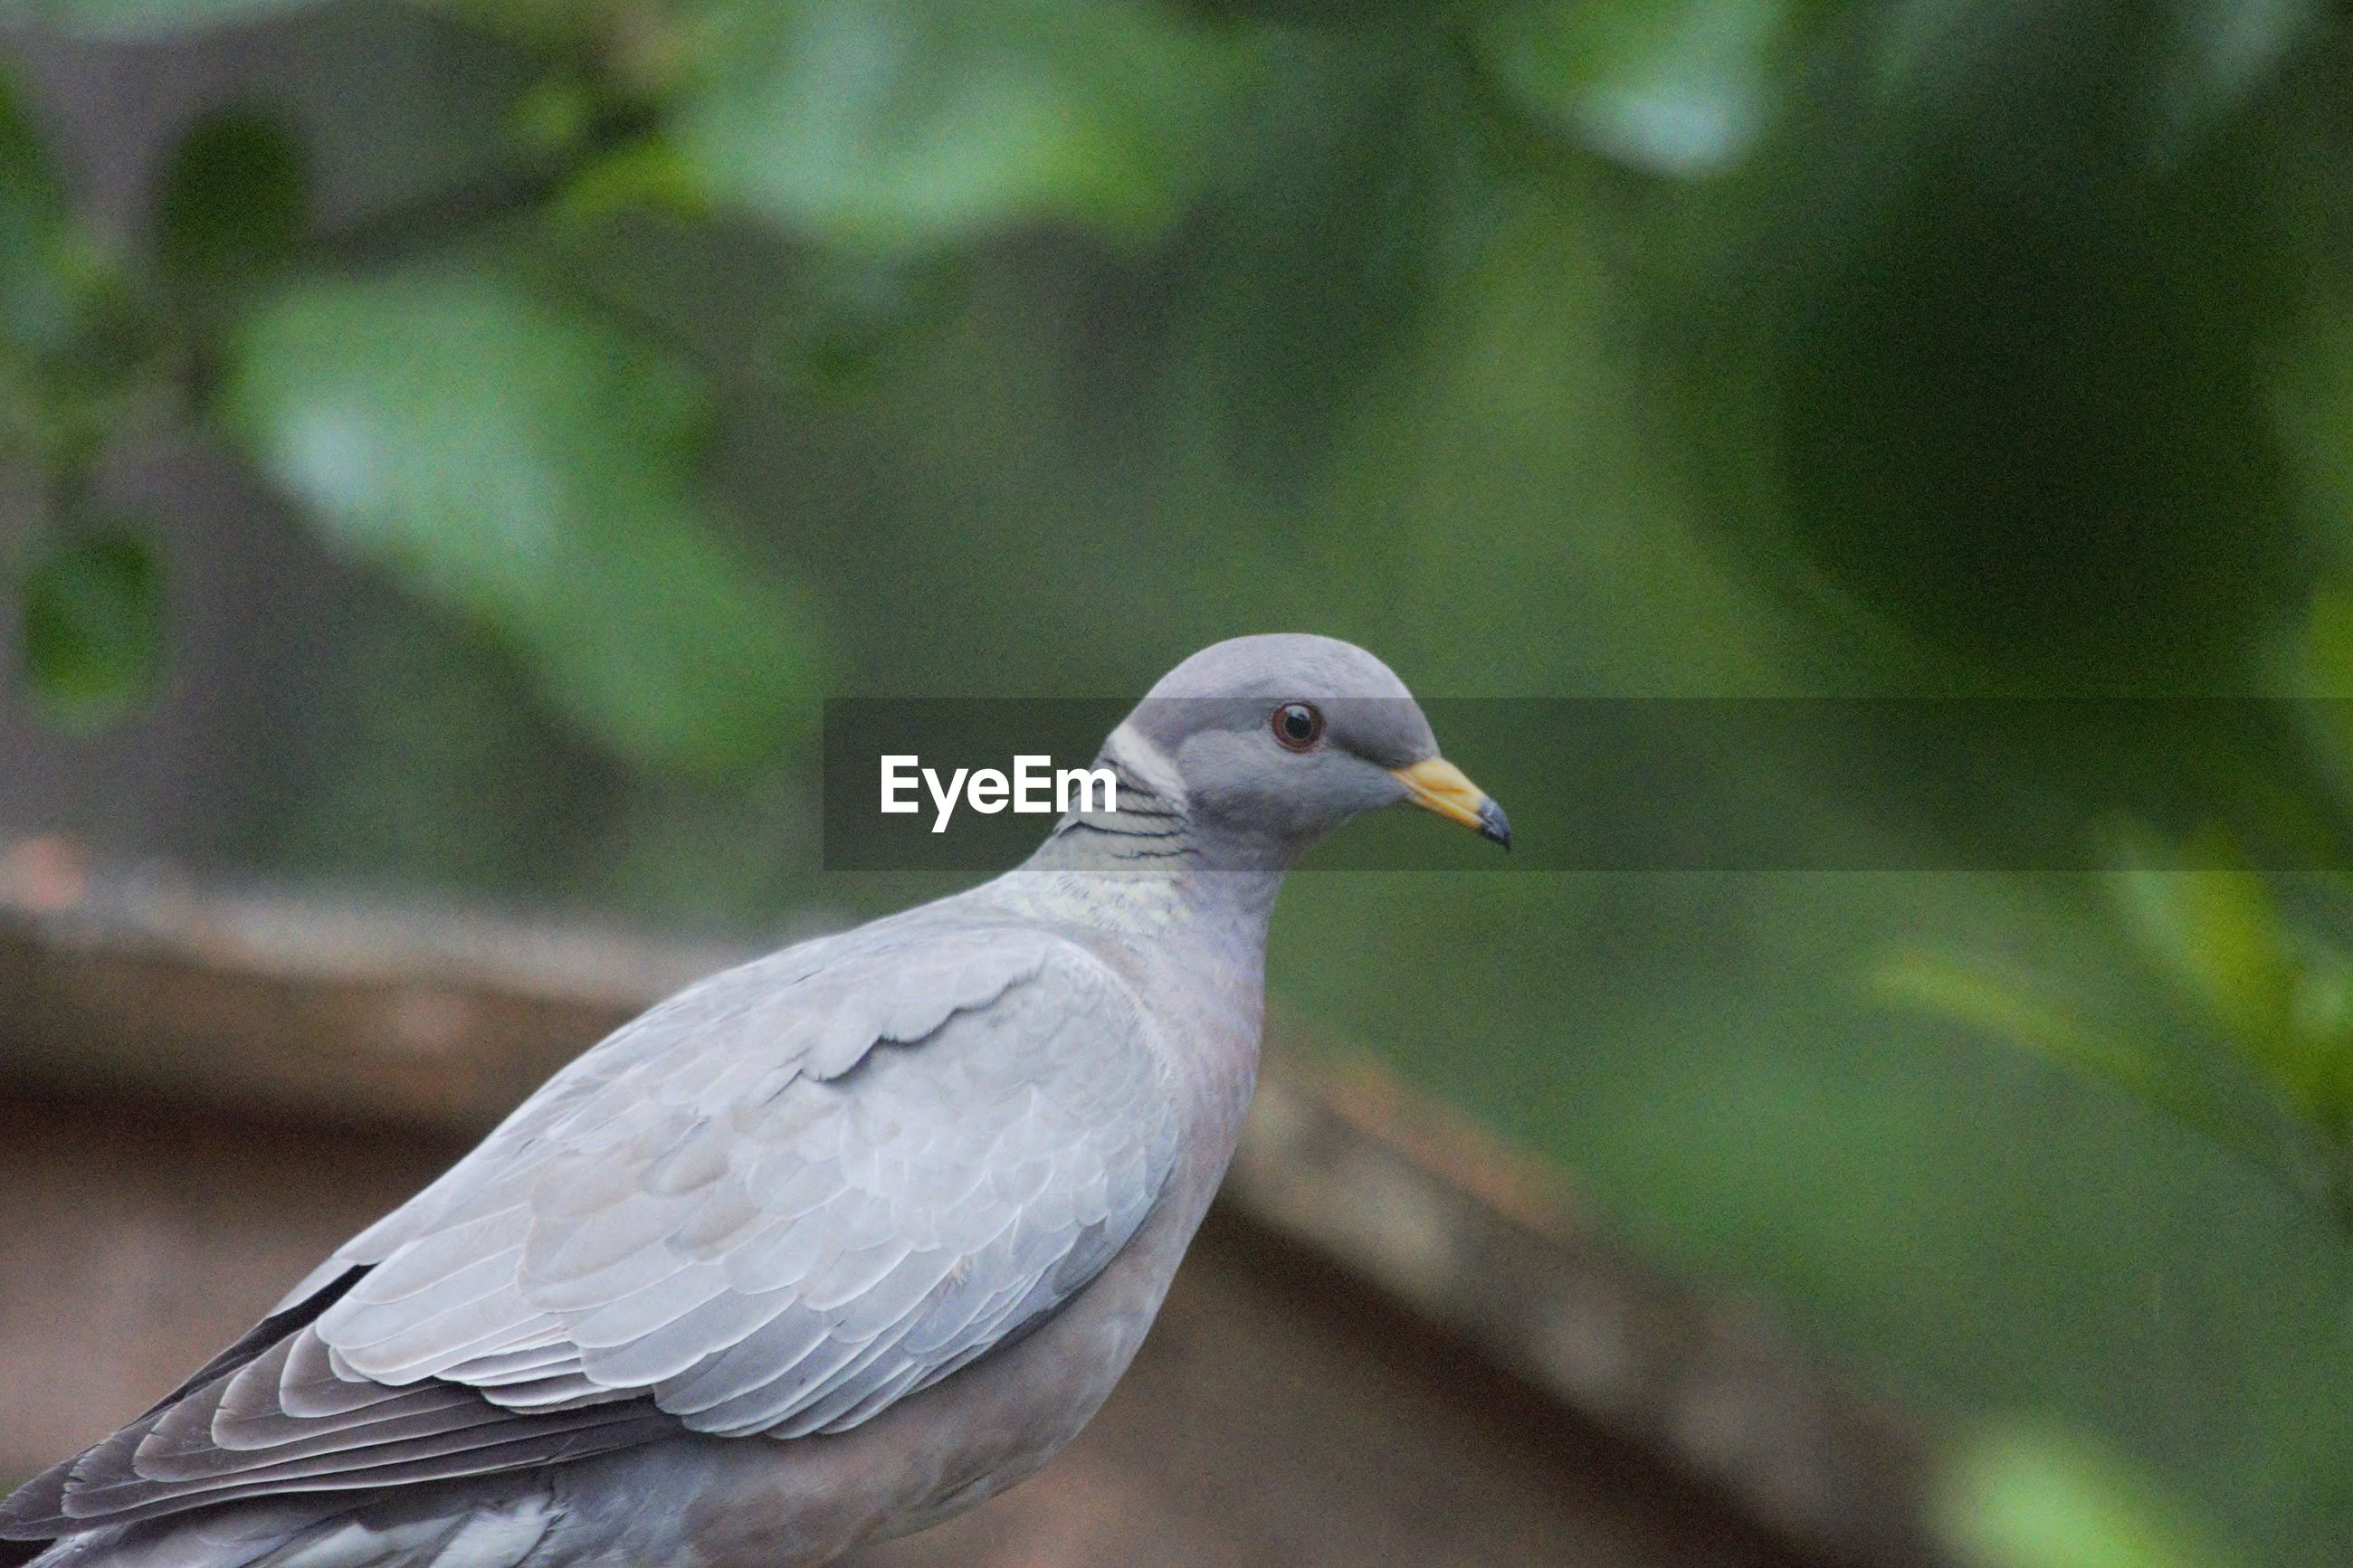 CLOSE-UP OF PIGEON PERCHING ON A PLANT